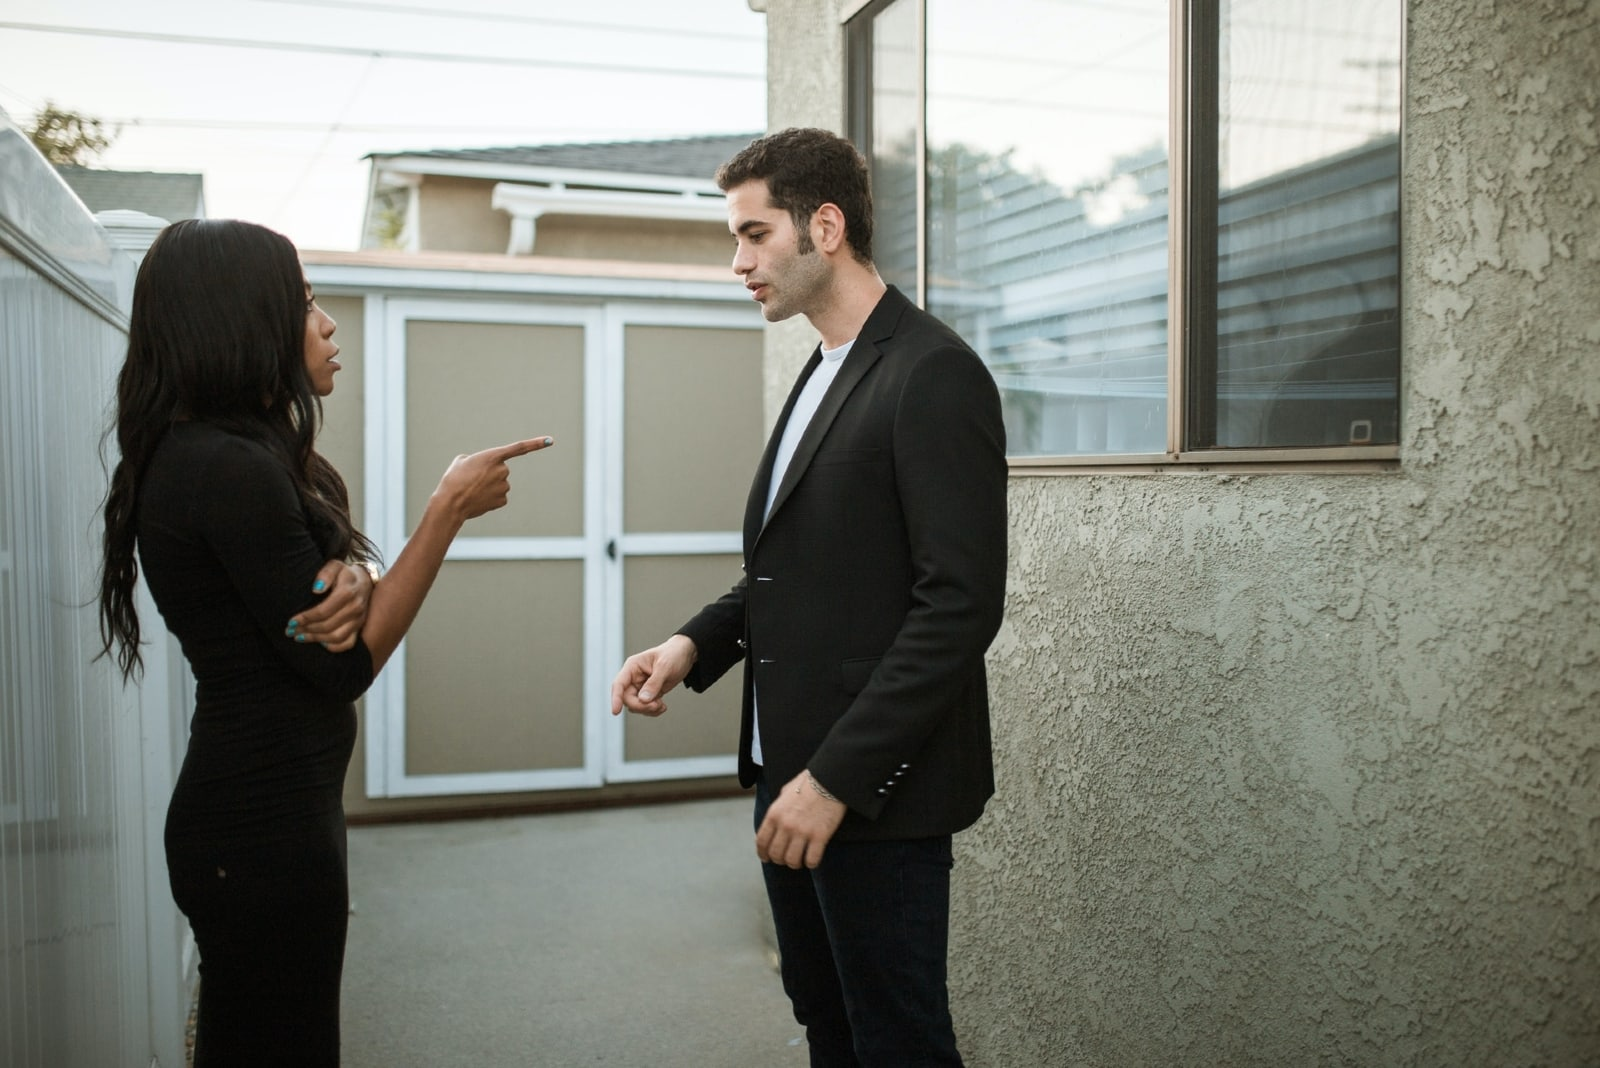 woman in black dress pointing finger at man